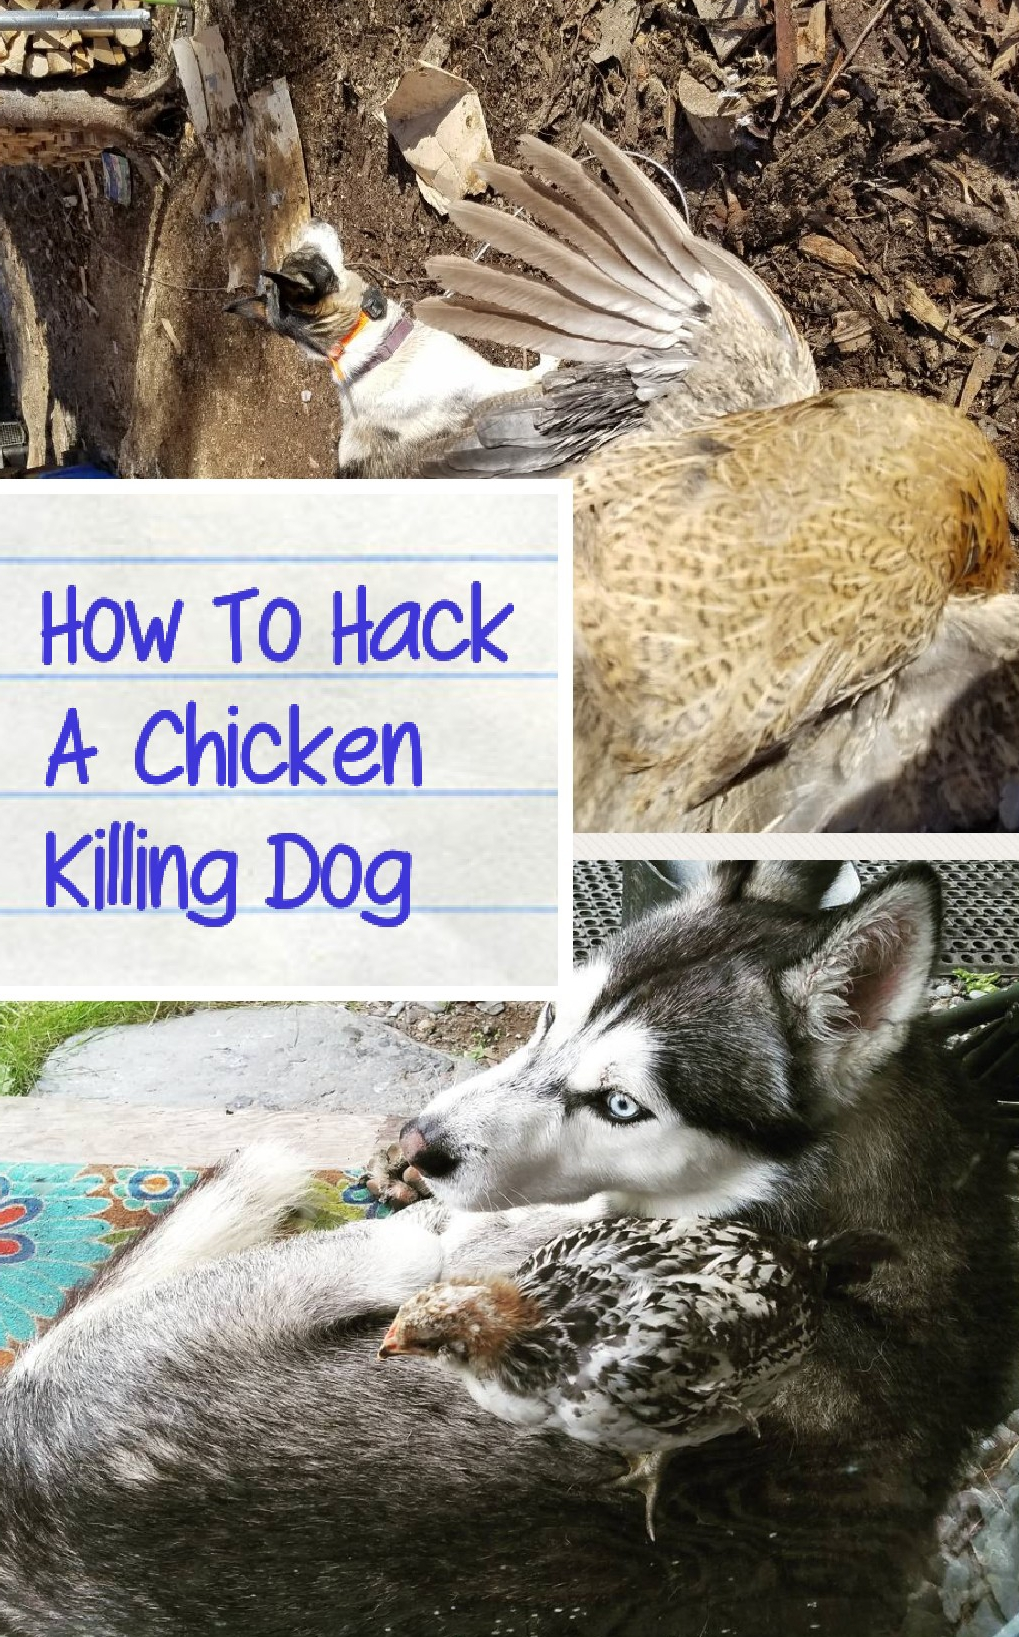 How To Hack A Chicken Killing Dog - SledDogSlow.com